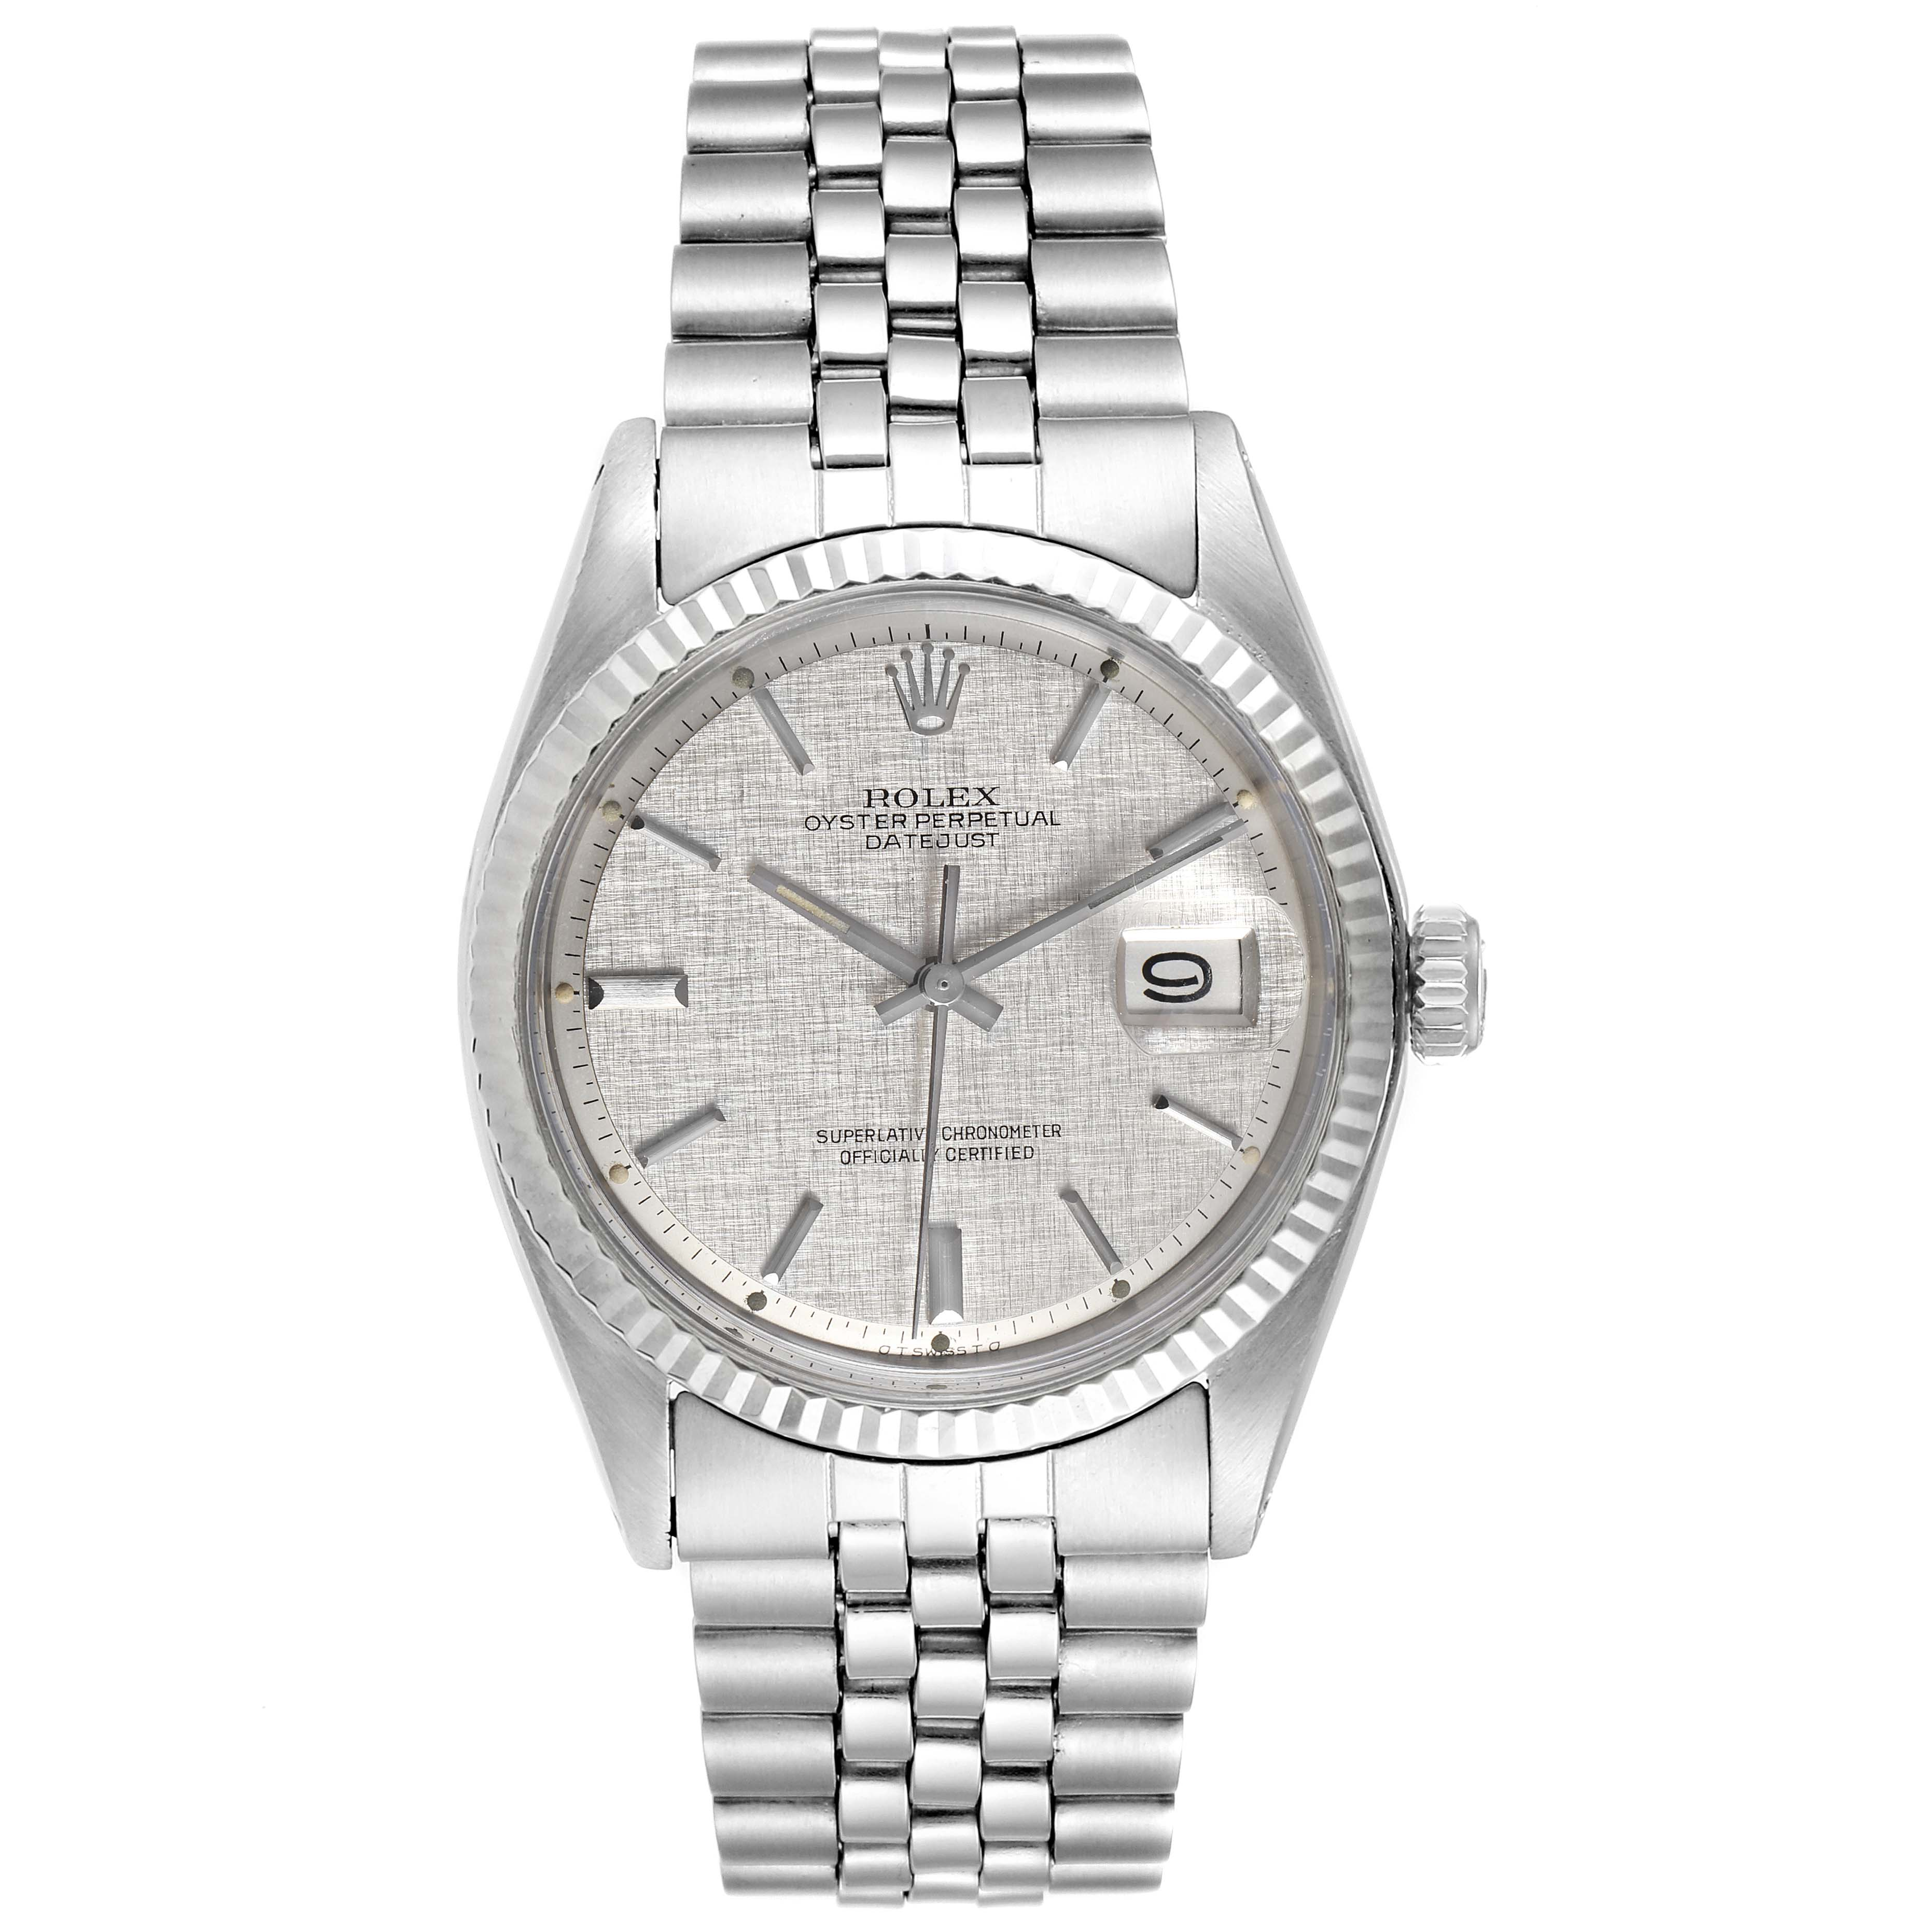 Rolex Datejust Steel White Gold Linen Dial Vintage Watch 1601 Box Papers SwissWatchExpo